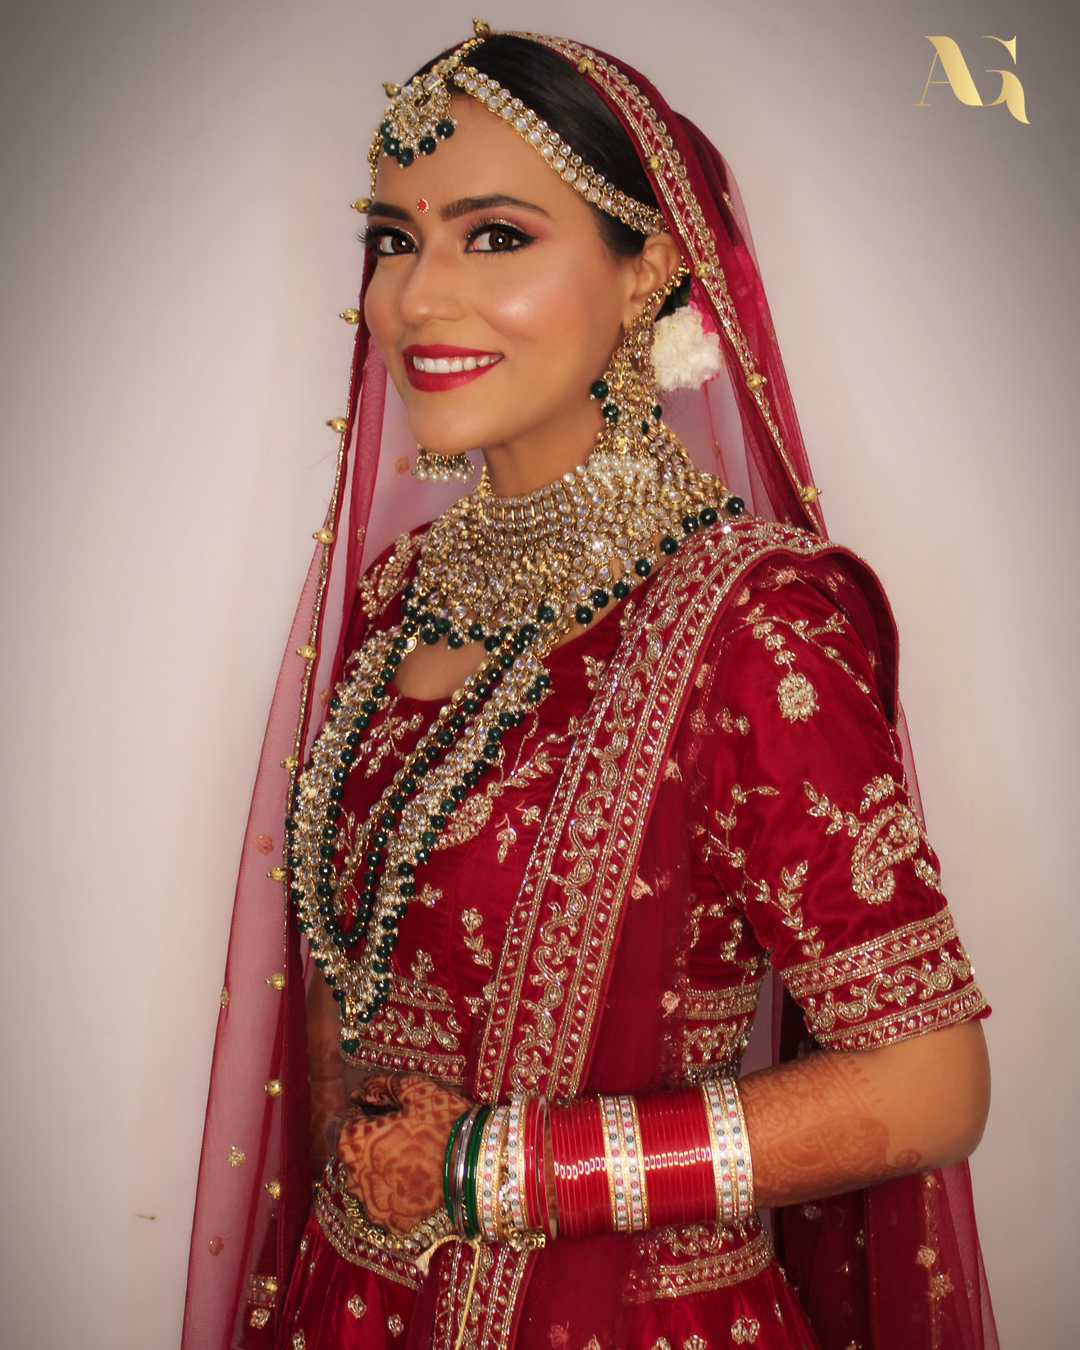 Raashi, you nailed the show stopper look in this wine red